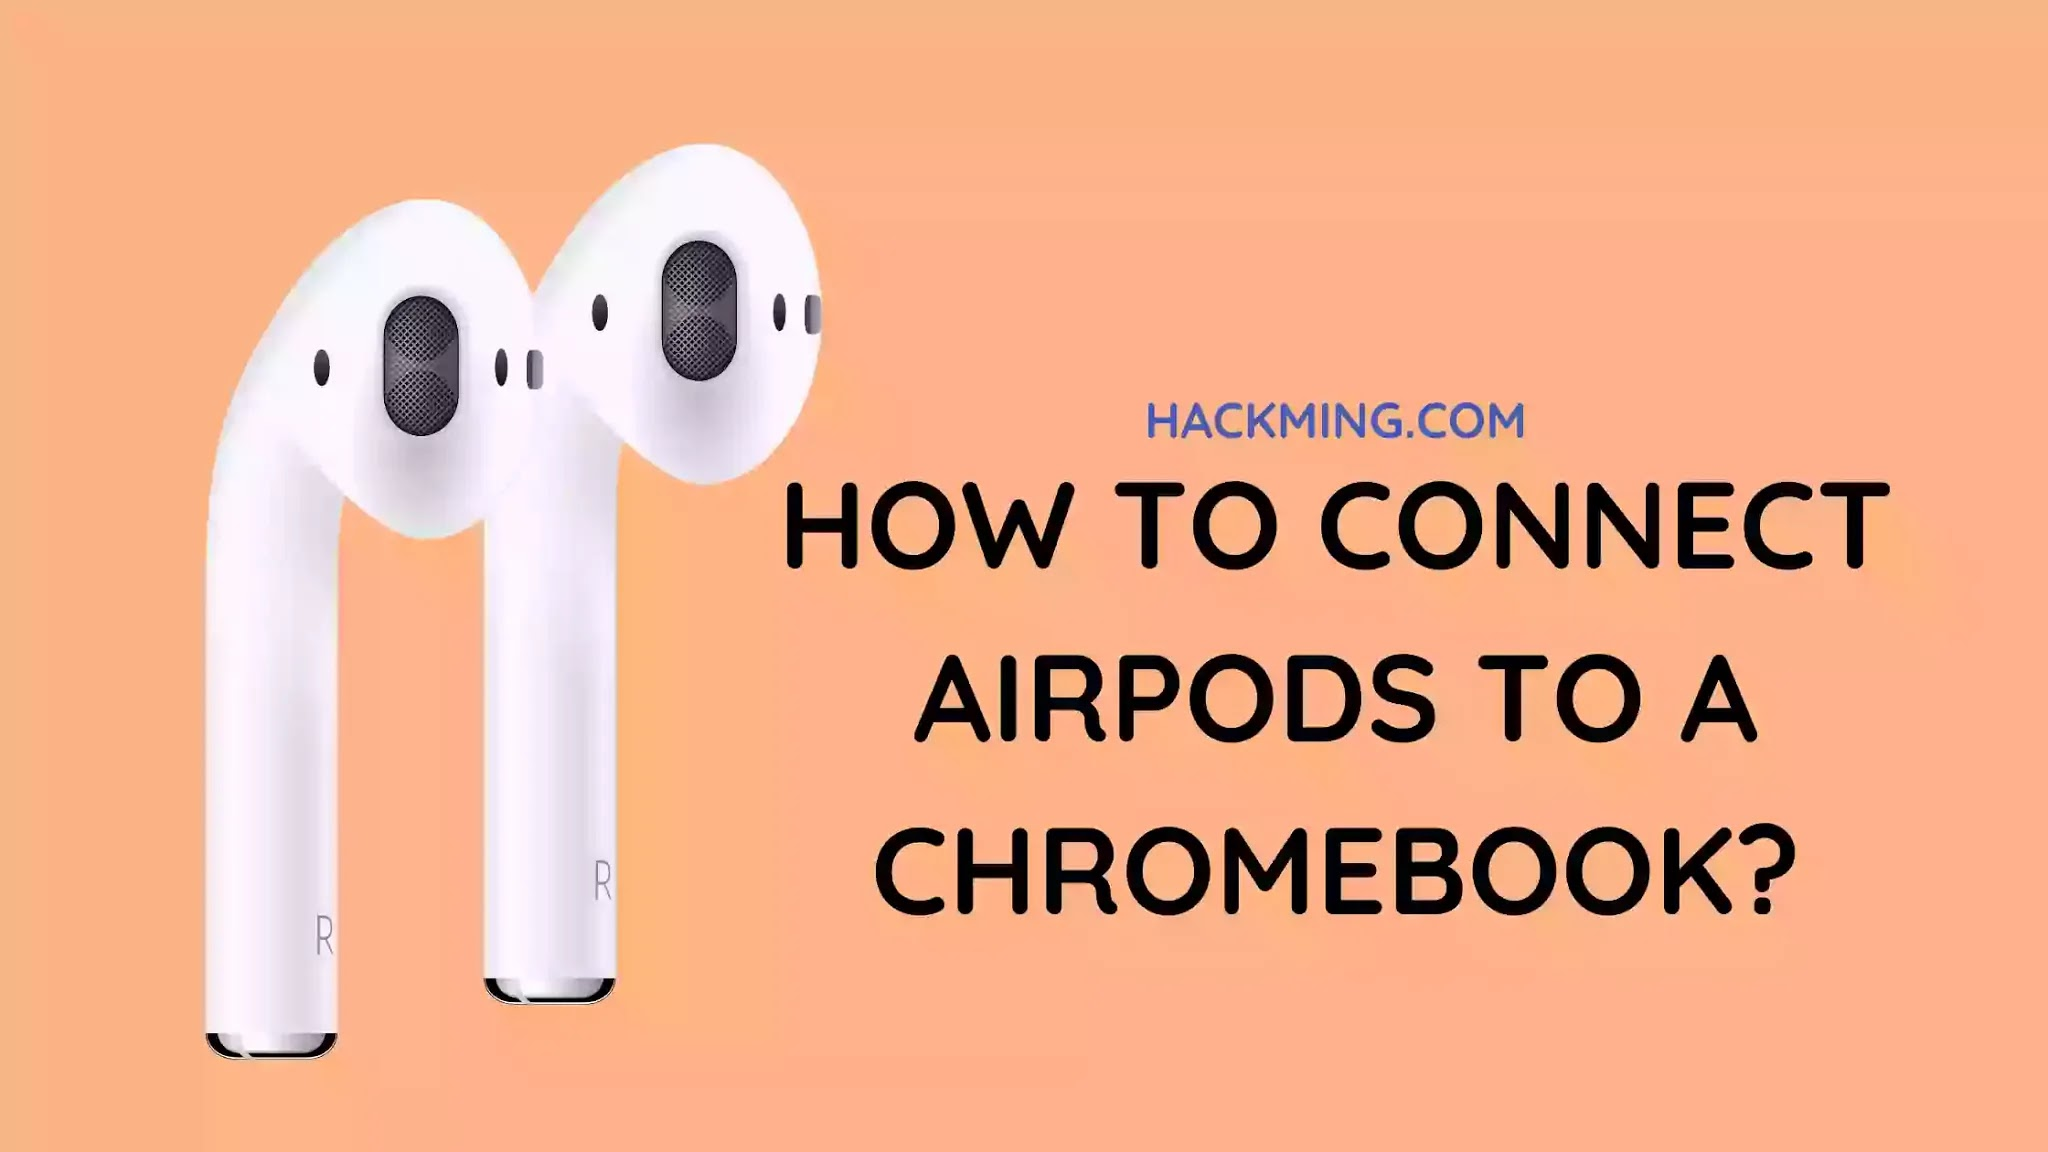 How to Connect AirPods to a Chromebook